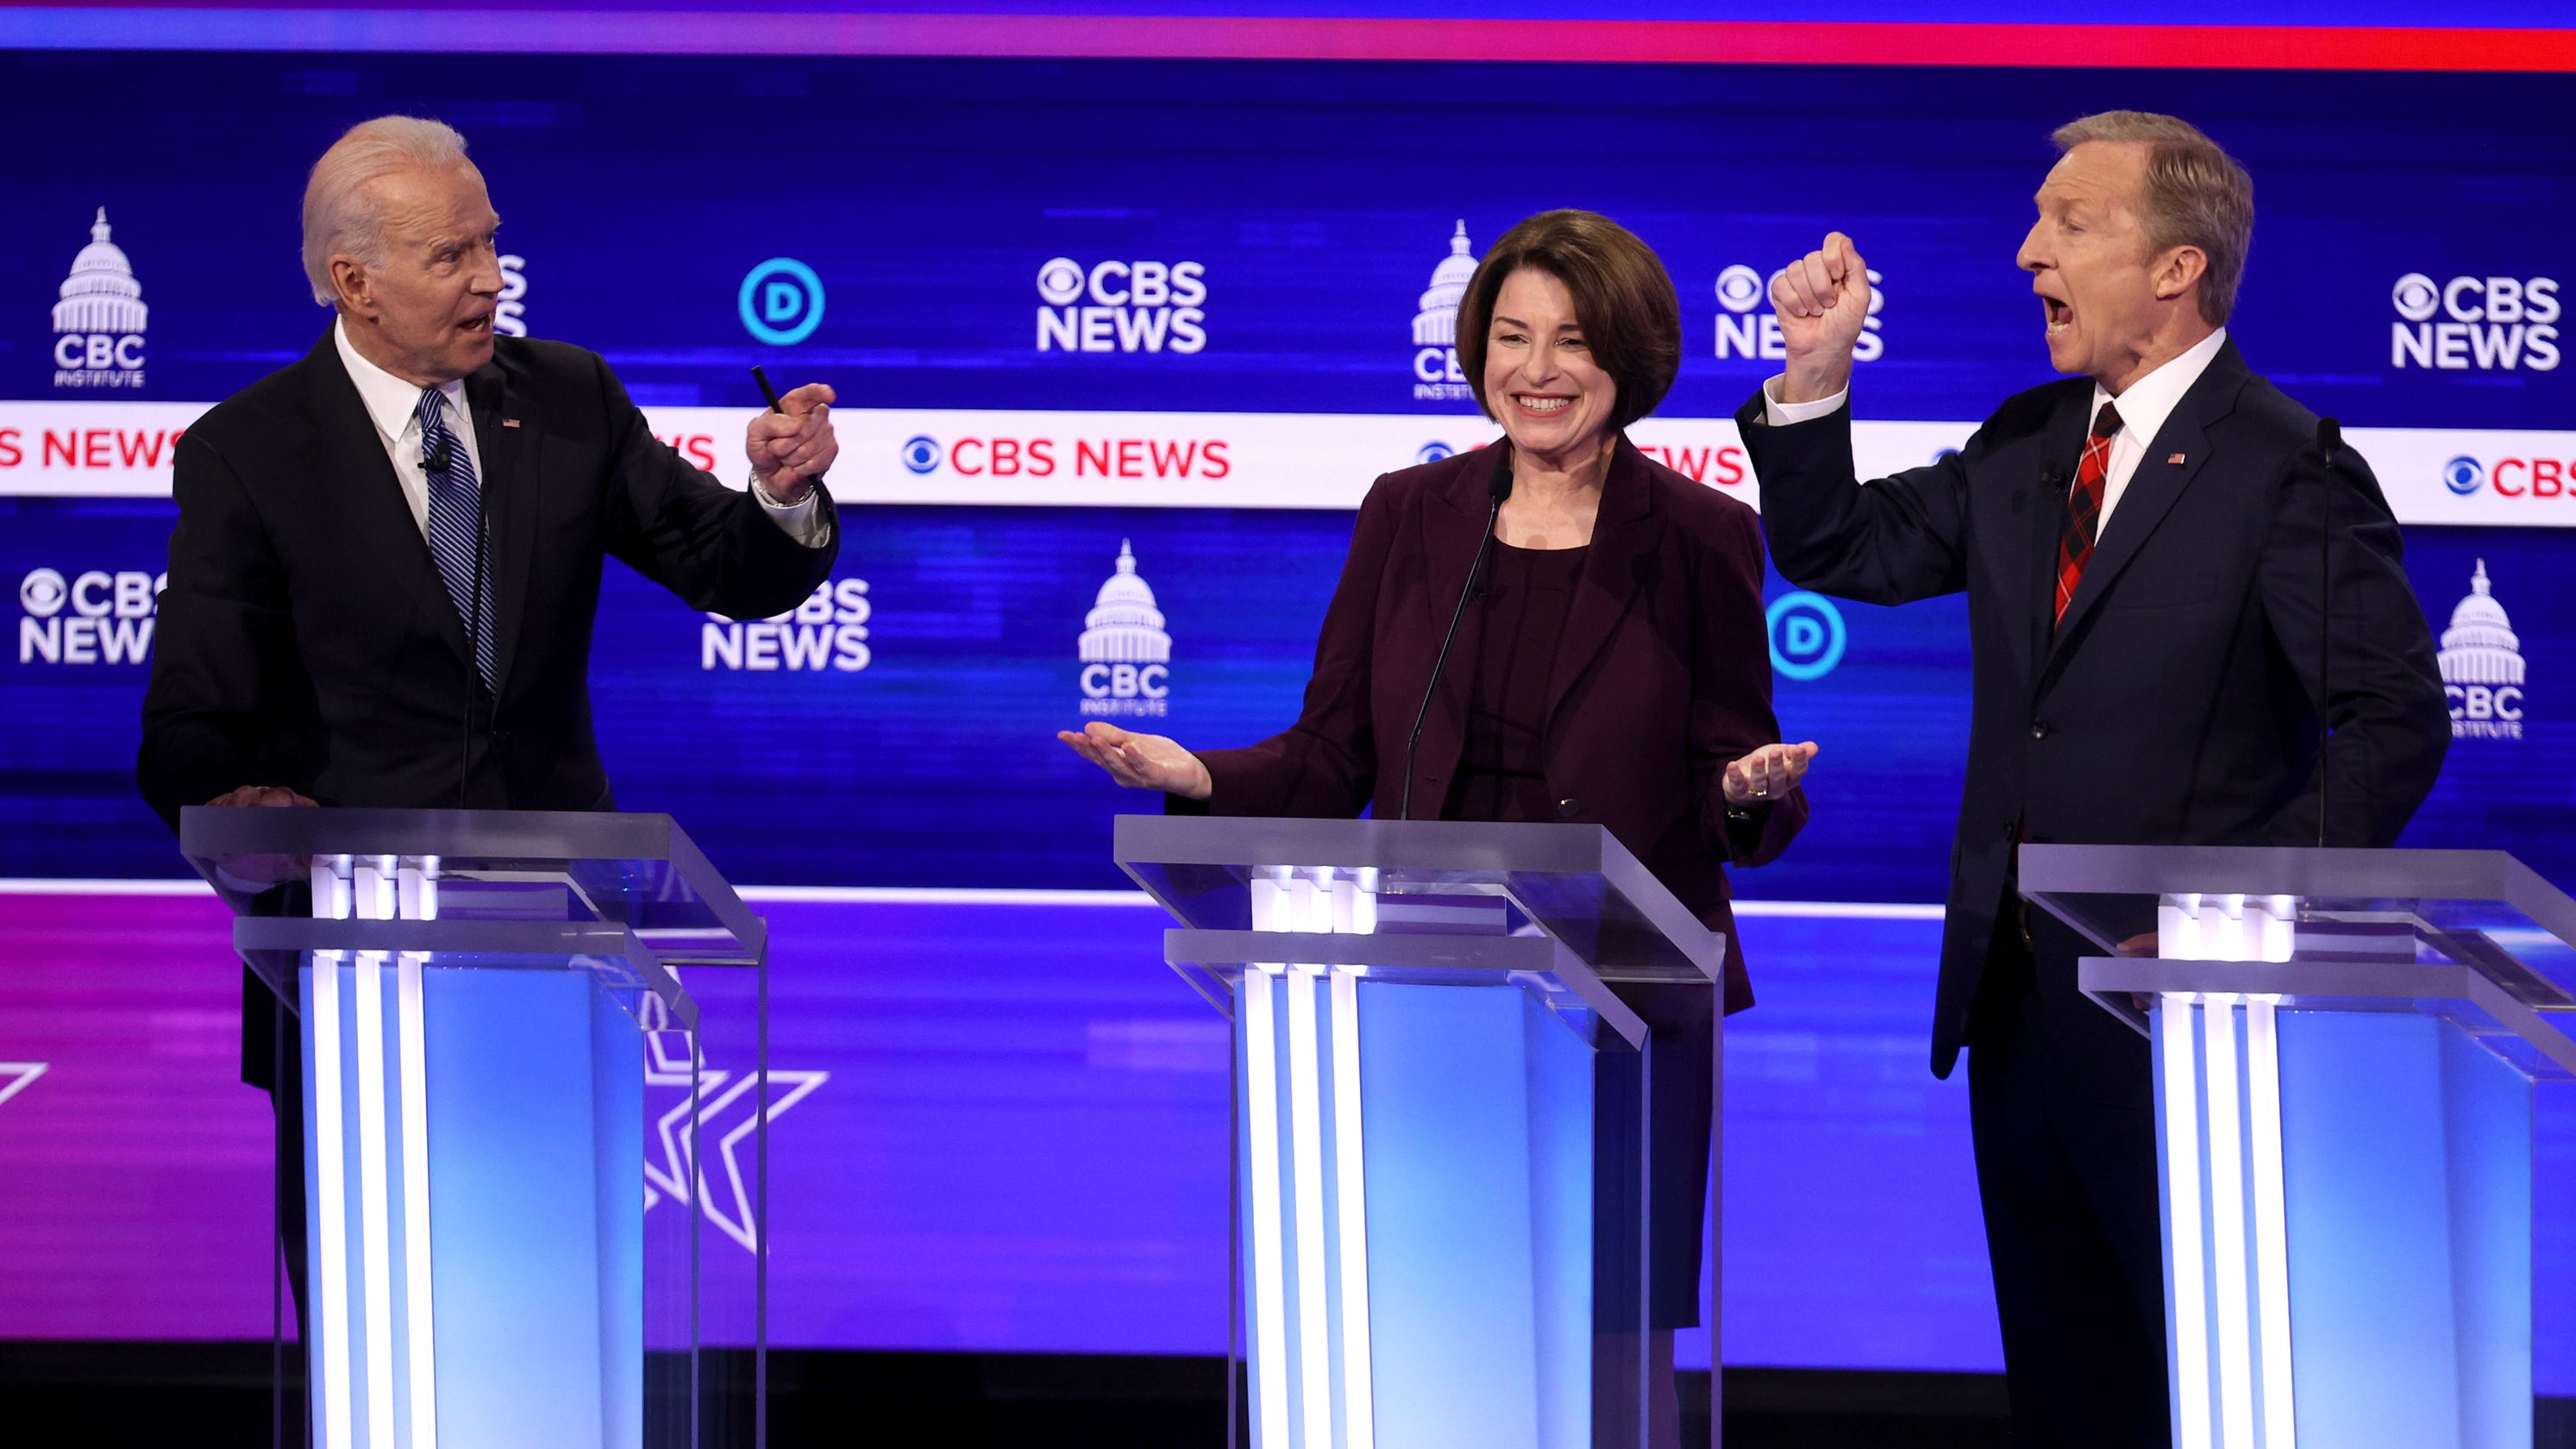 'Hearing my name mentioned a little bit': Sanders plays defense and other moments from the South Carolina Democratic debate thumbnail